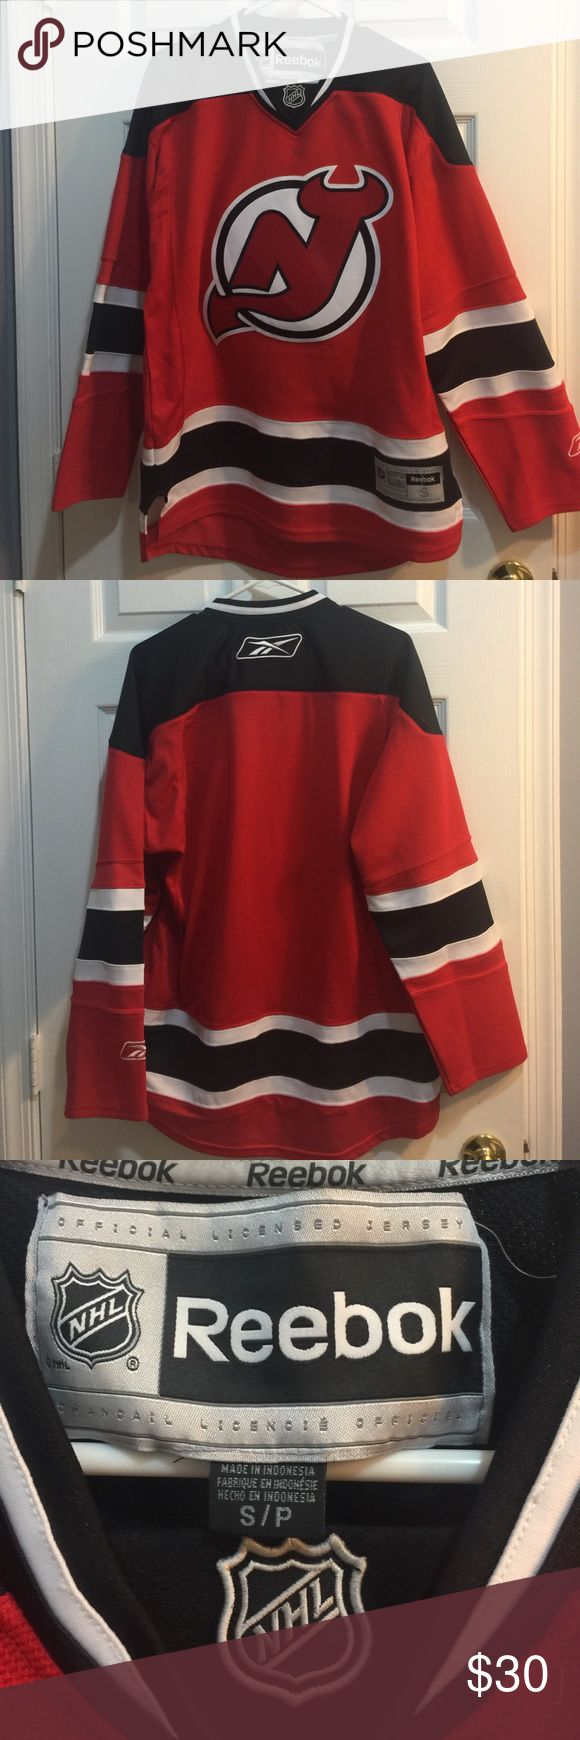 New Jersey Devils Jersey Size small, only worn once to a game, great condition Reebok Tops Tees - Long Sleeve